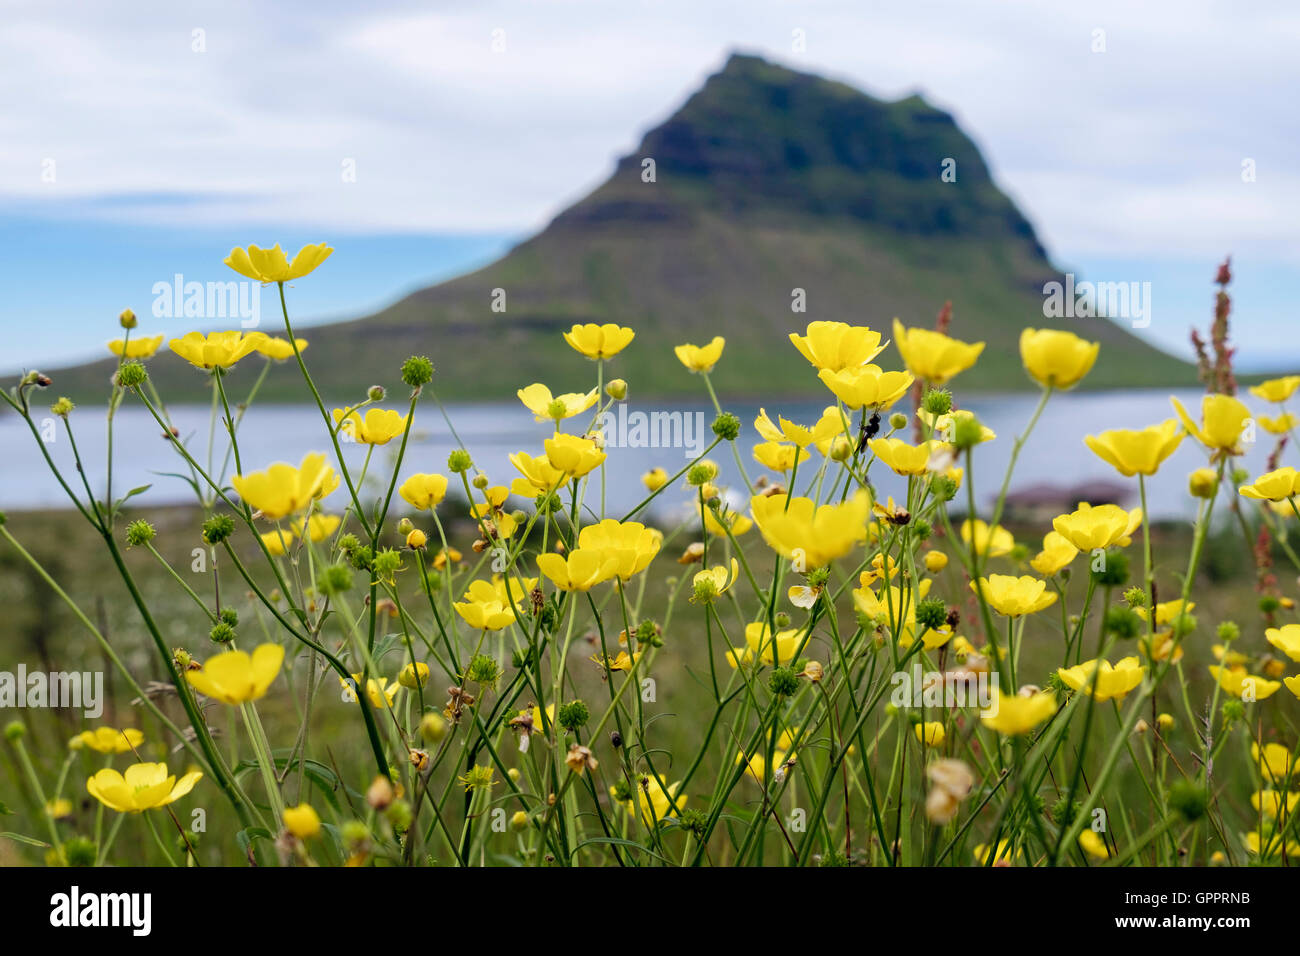 Mount Kirkufell with Buttercups in foreground in summer. Grundarfjordur, Snaefellsnes Peninsula, Iceland - Stock Image